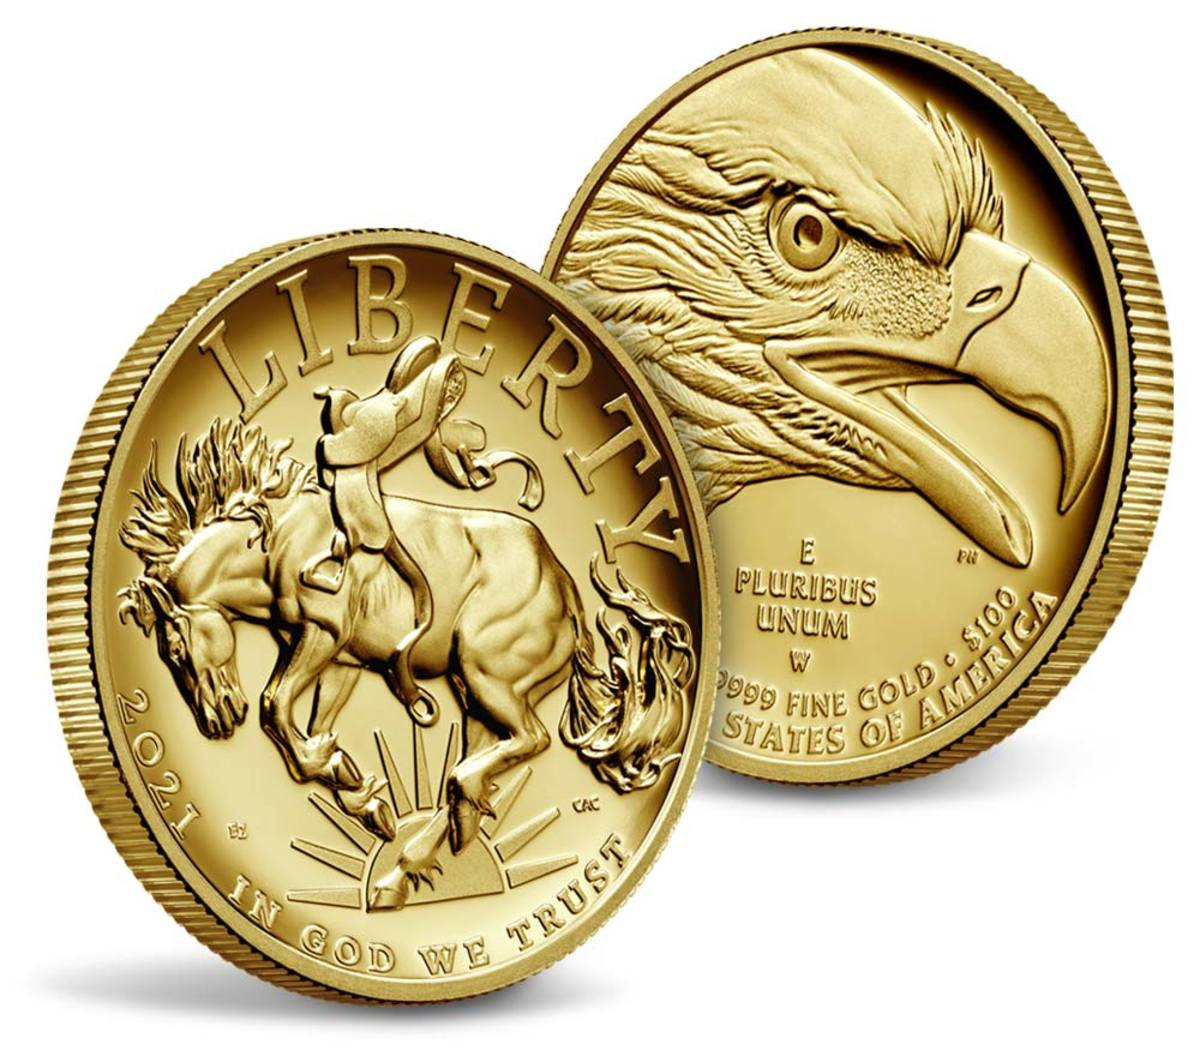 2021 American Liberty high-relief gold 1-ounce proof. (Image courtesy United States Mint.)